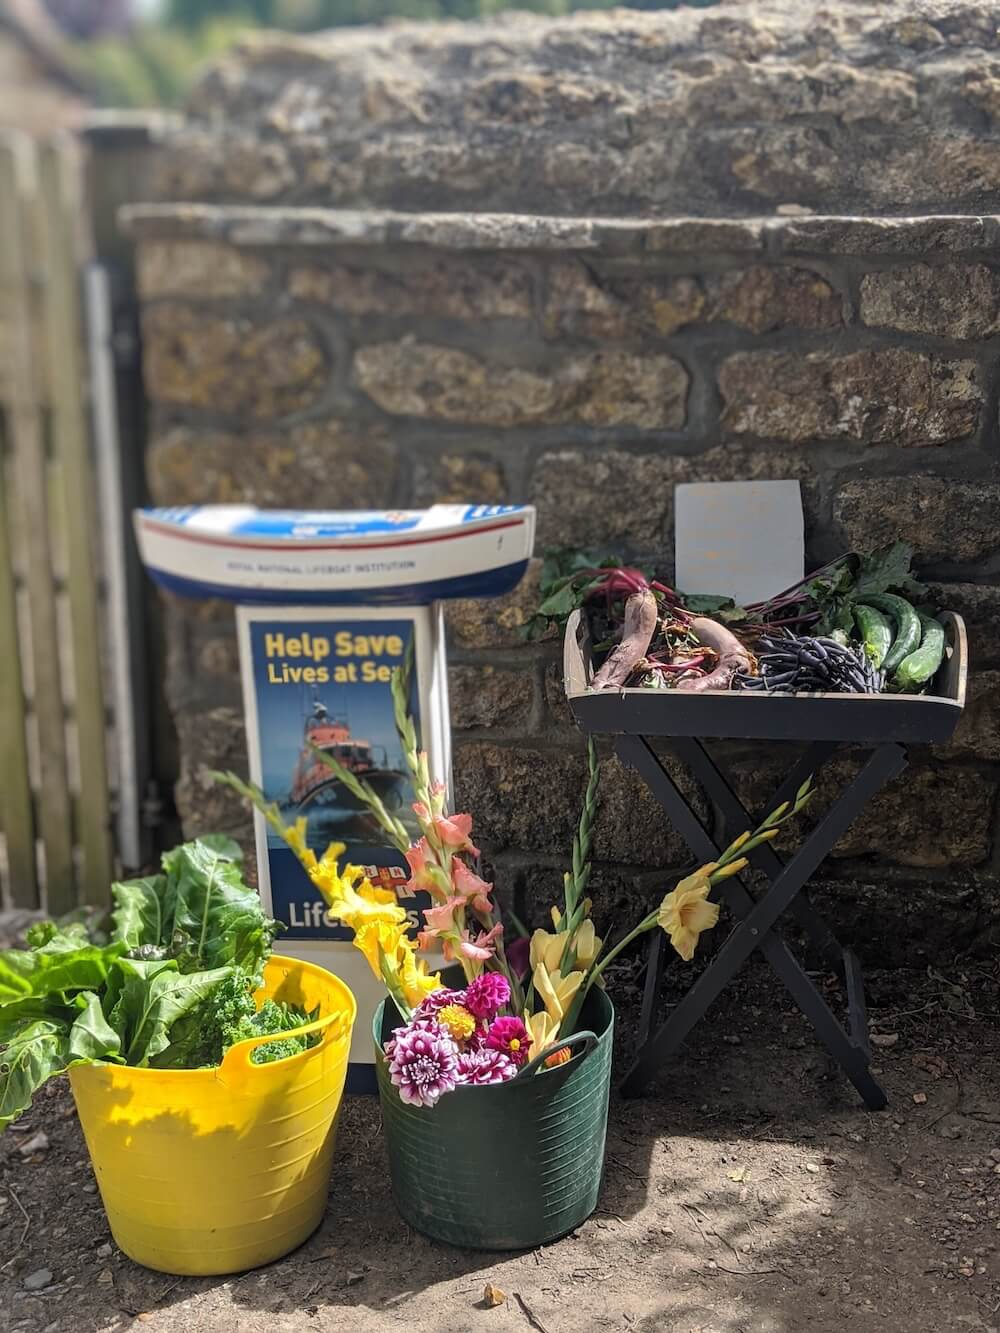 Veg for sale in Shipton Gorge